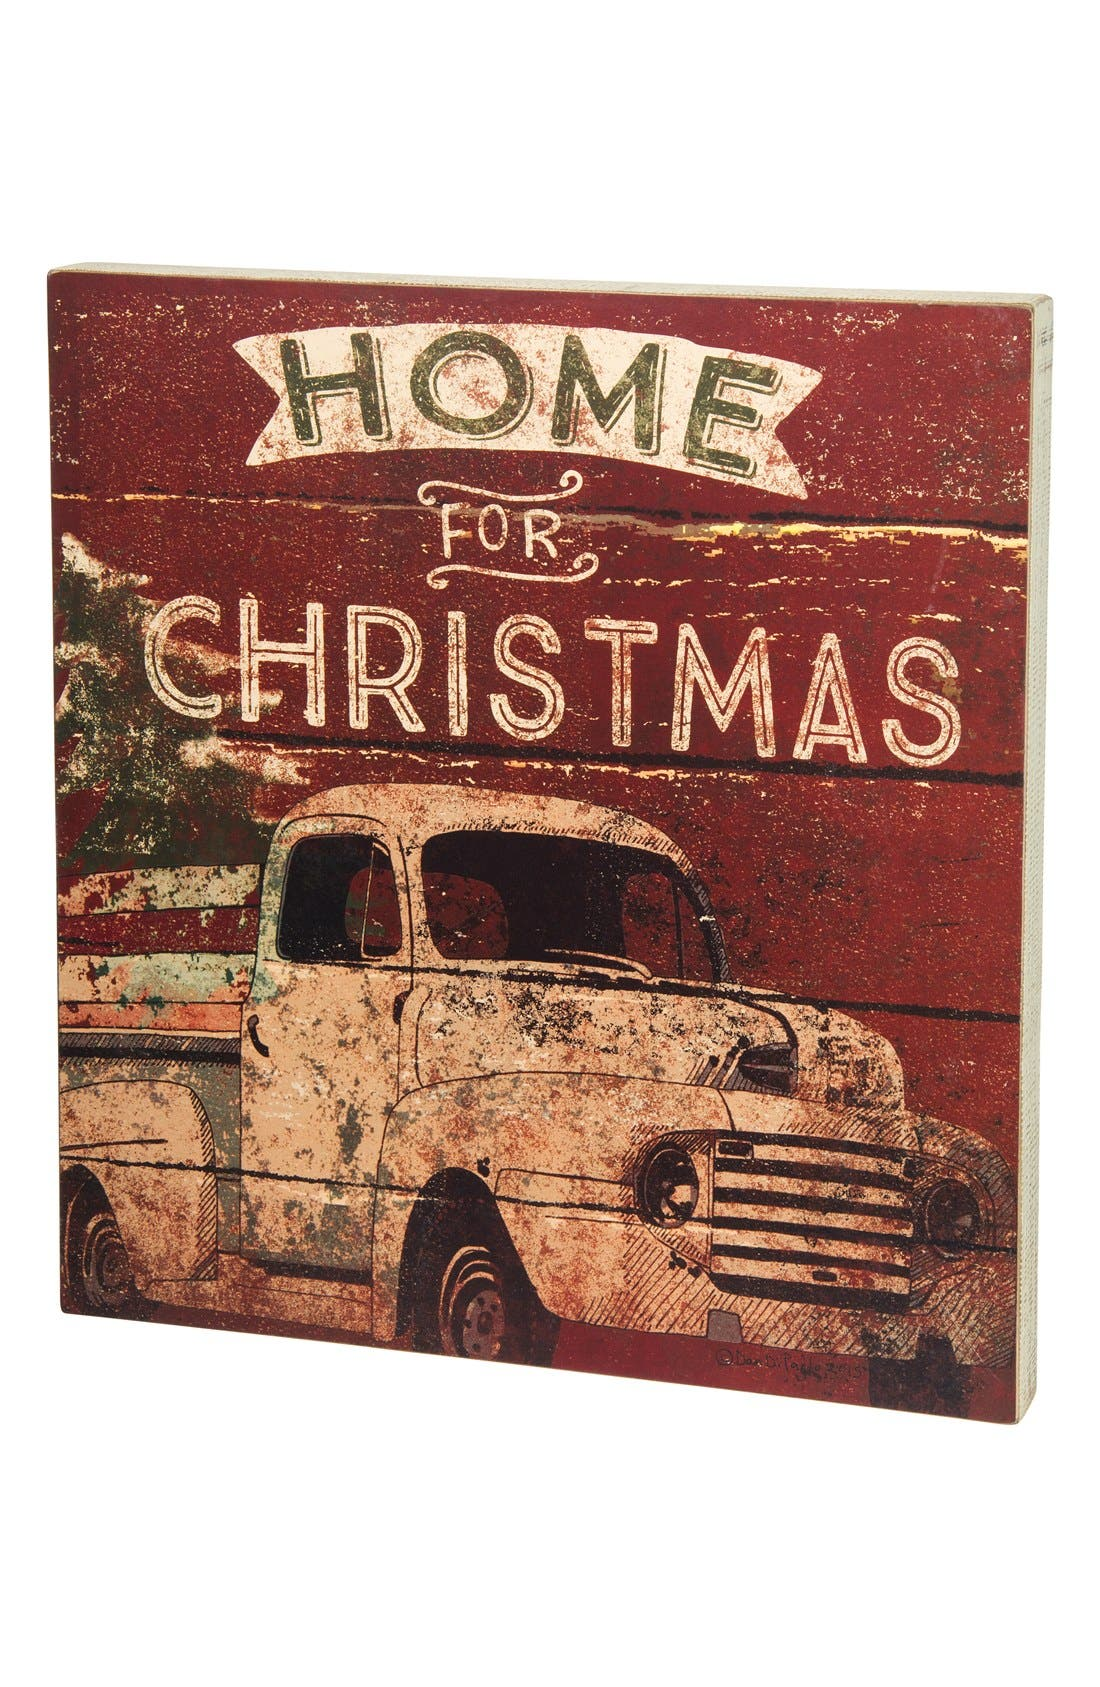 Alternate Image 1 Selected - Primitives by Kathy 'Home for Christmas' Box Sign